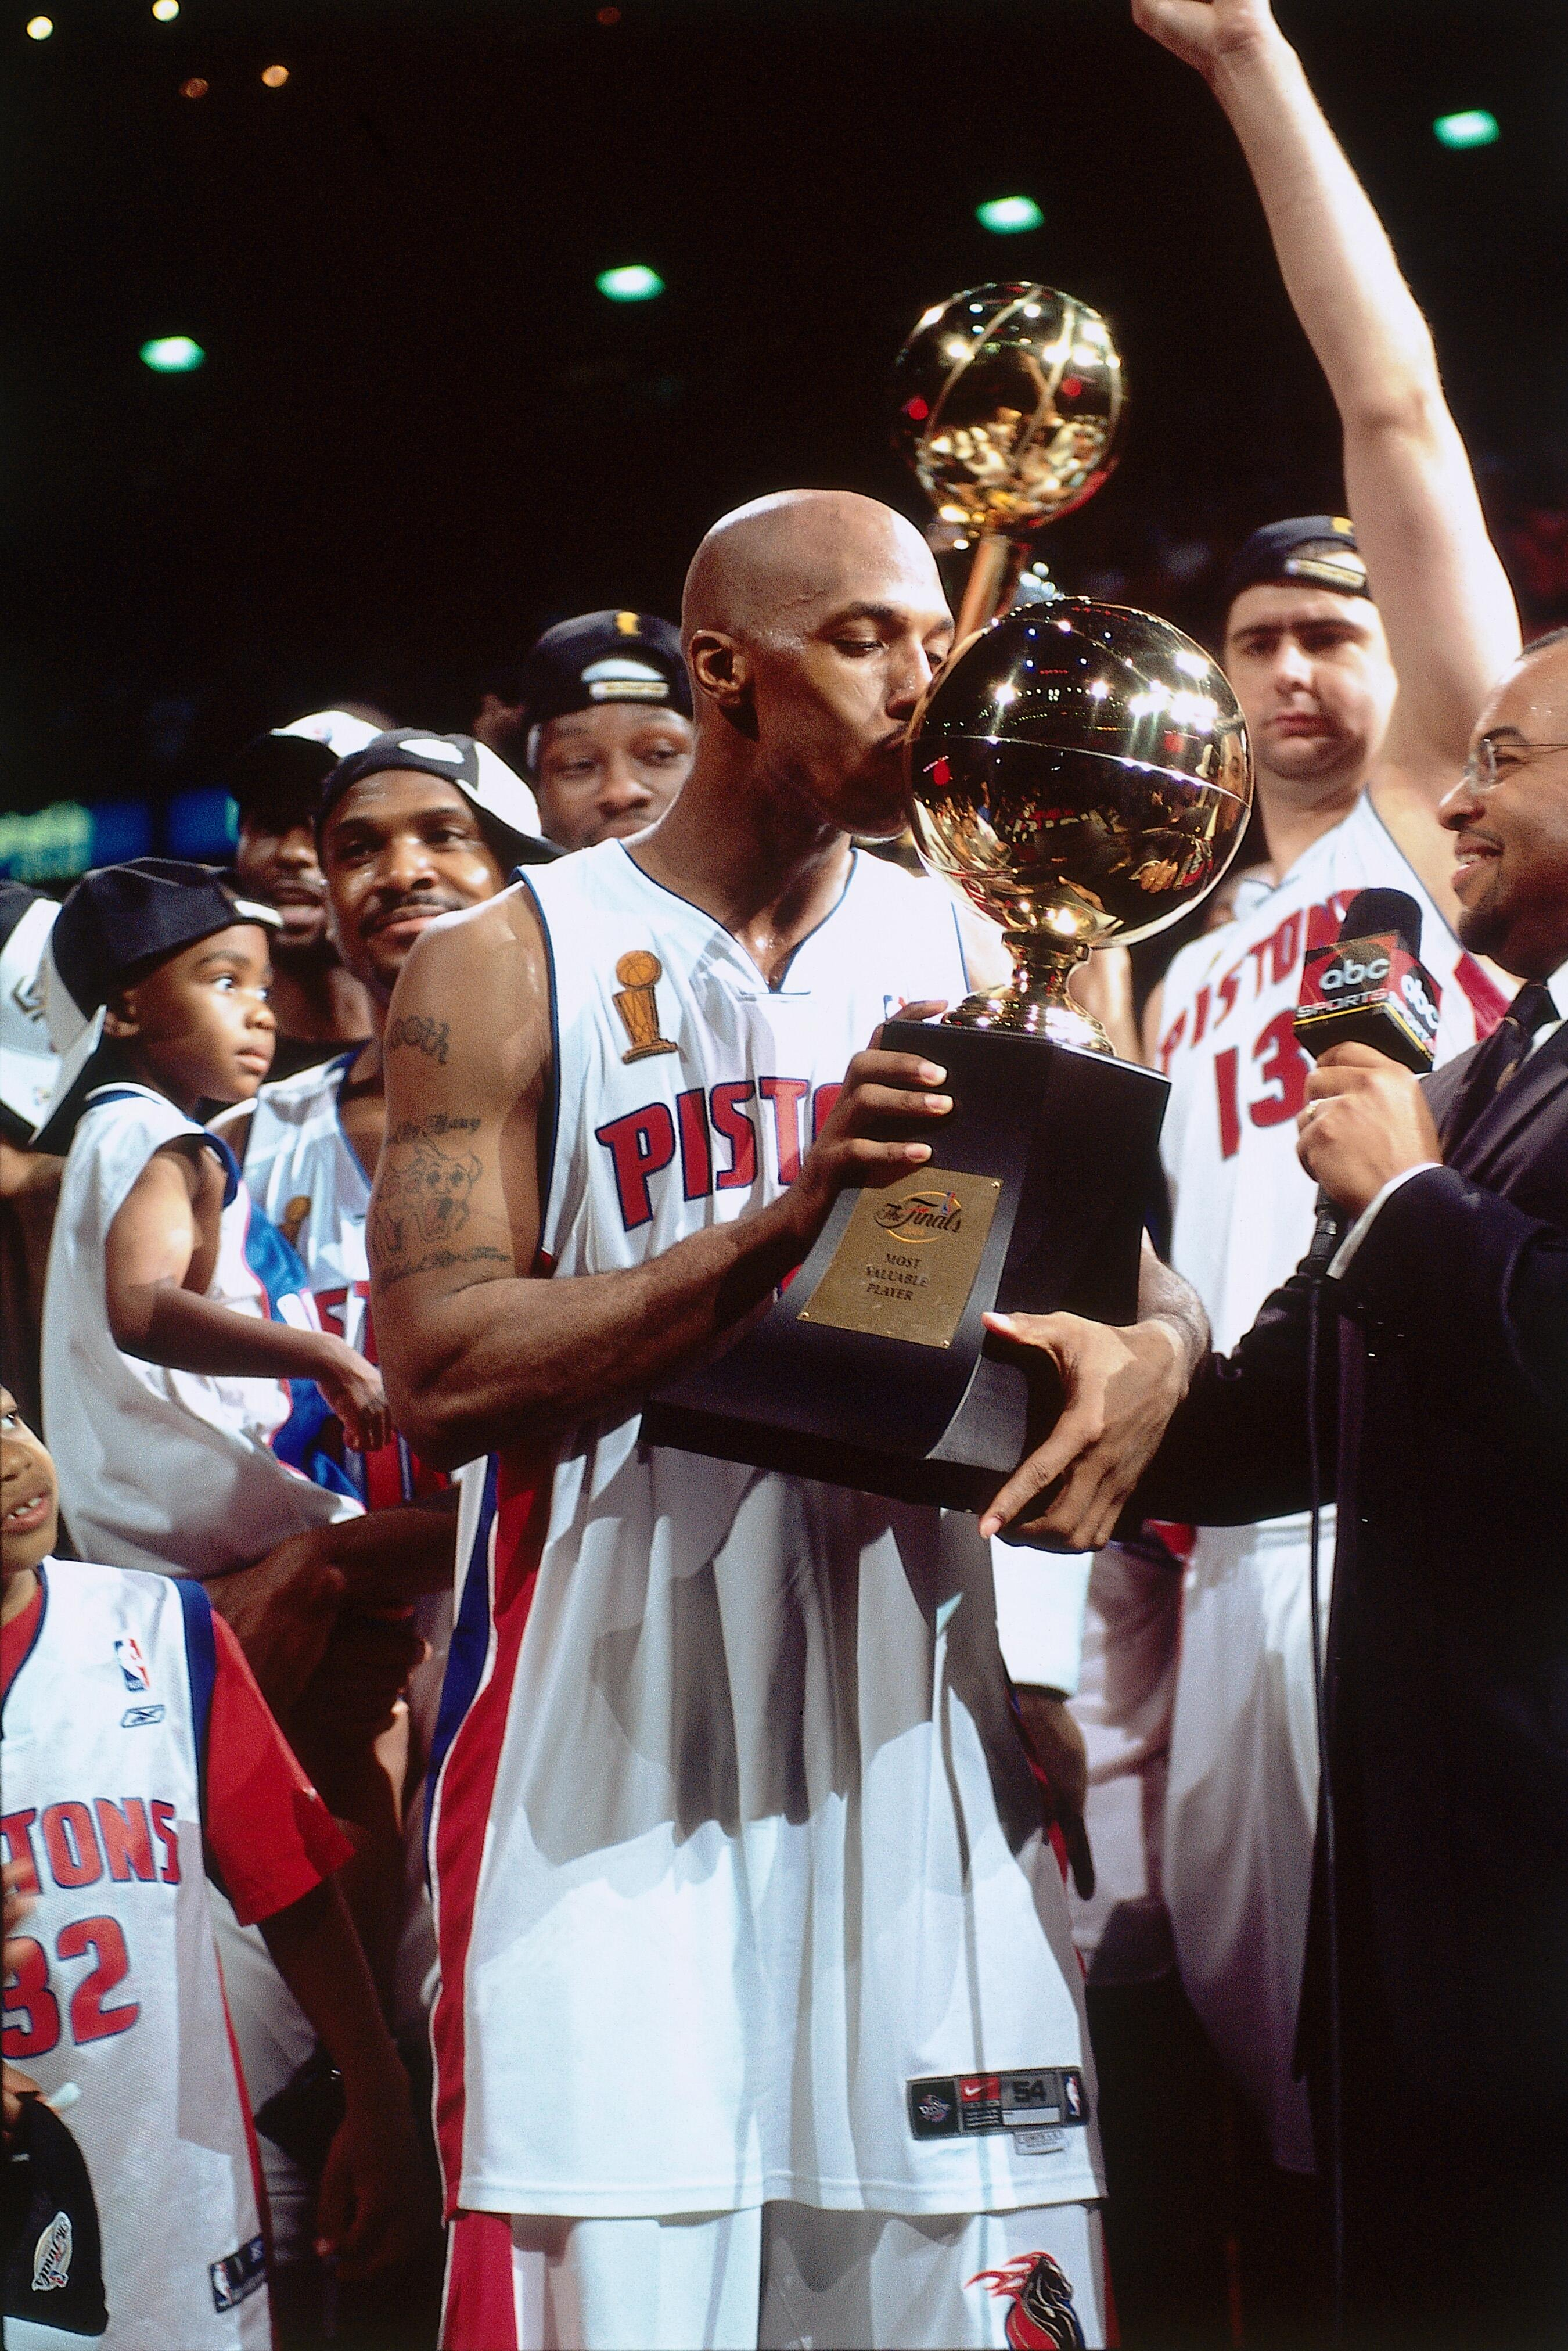 Billups won Finals MVP and is one of the most underrated players of his generation